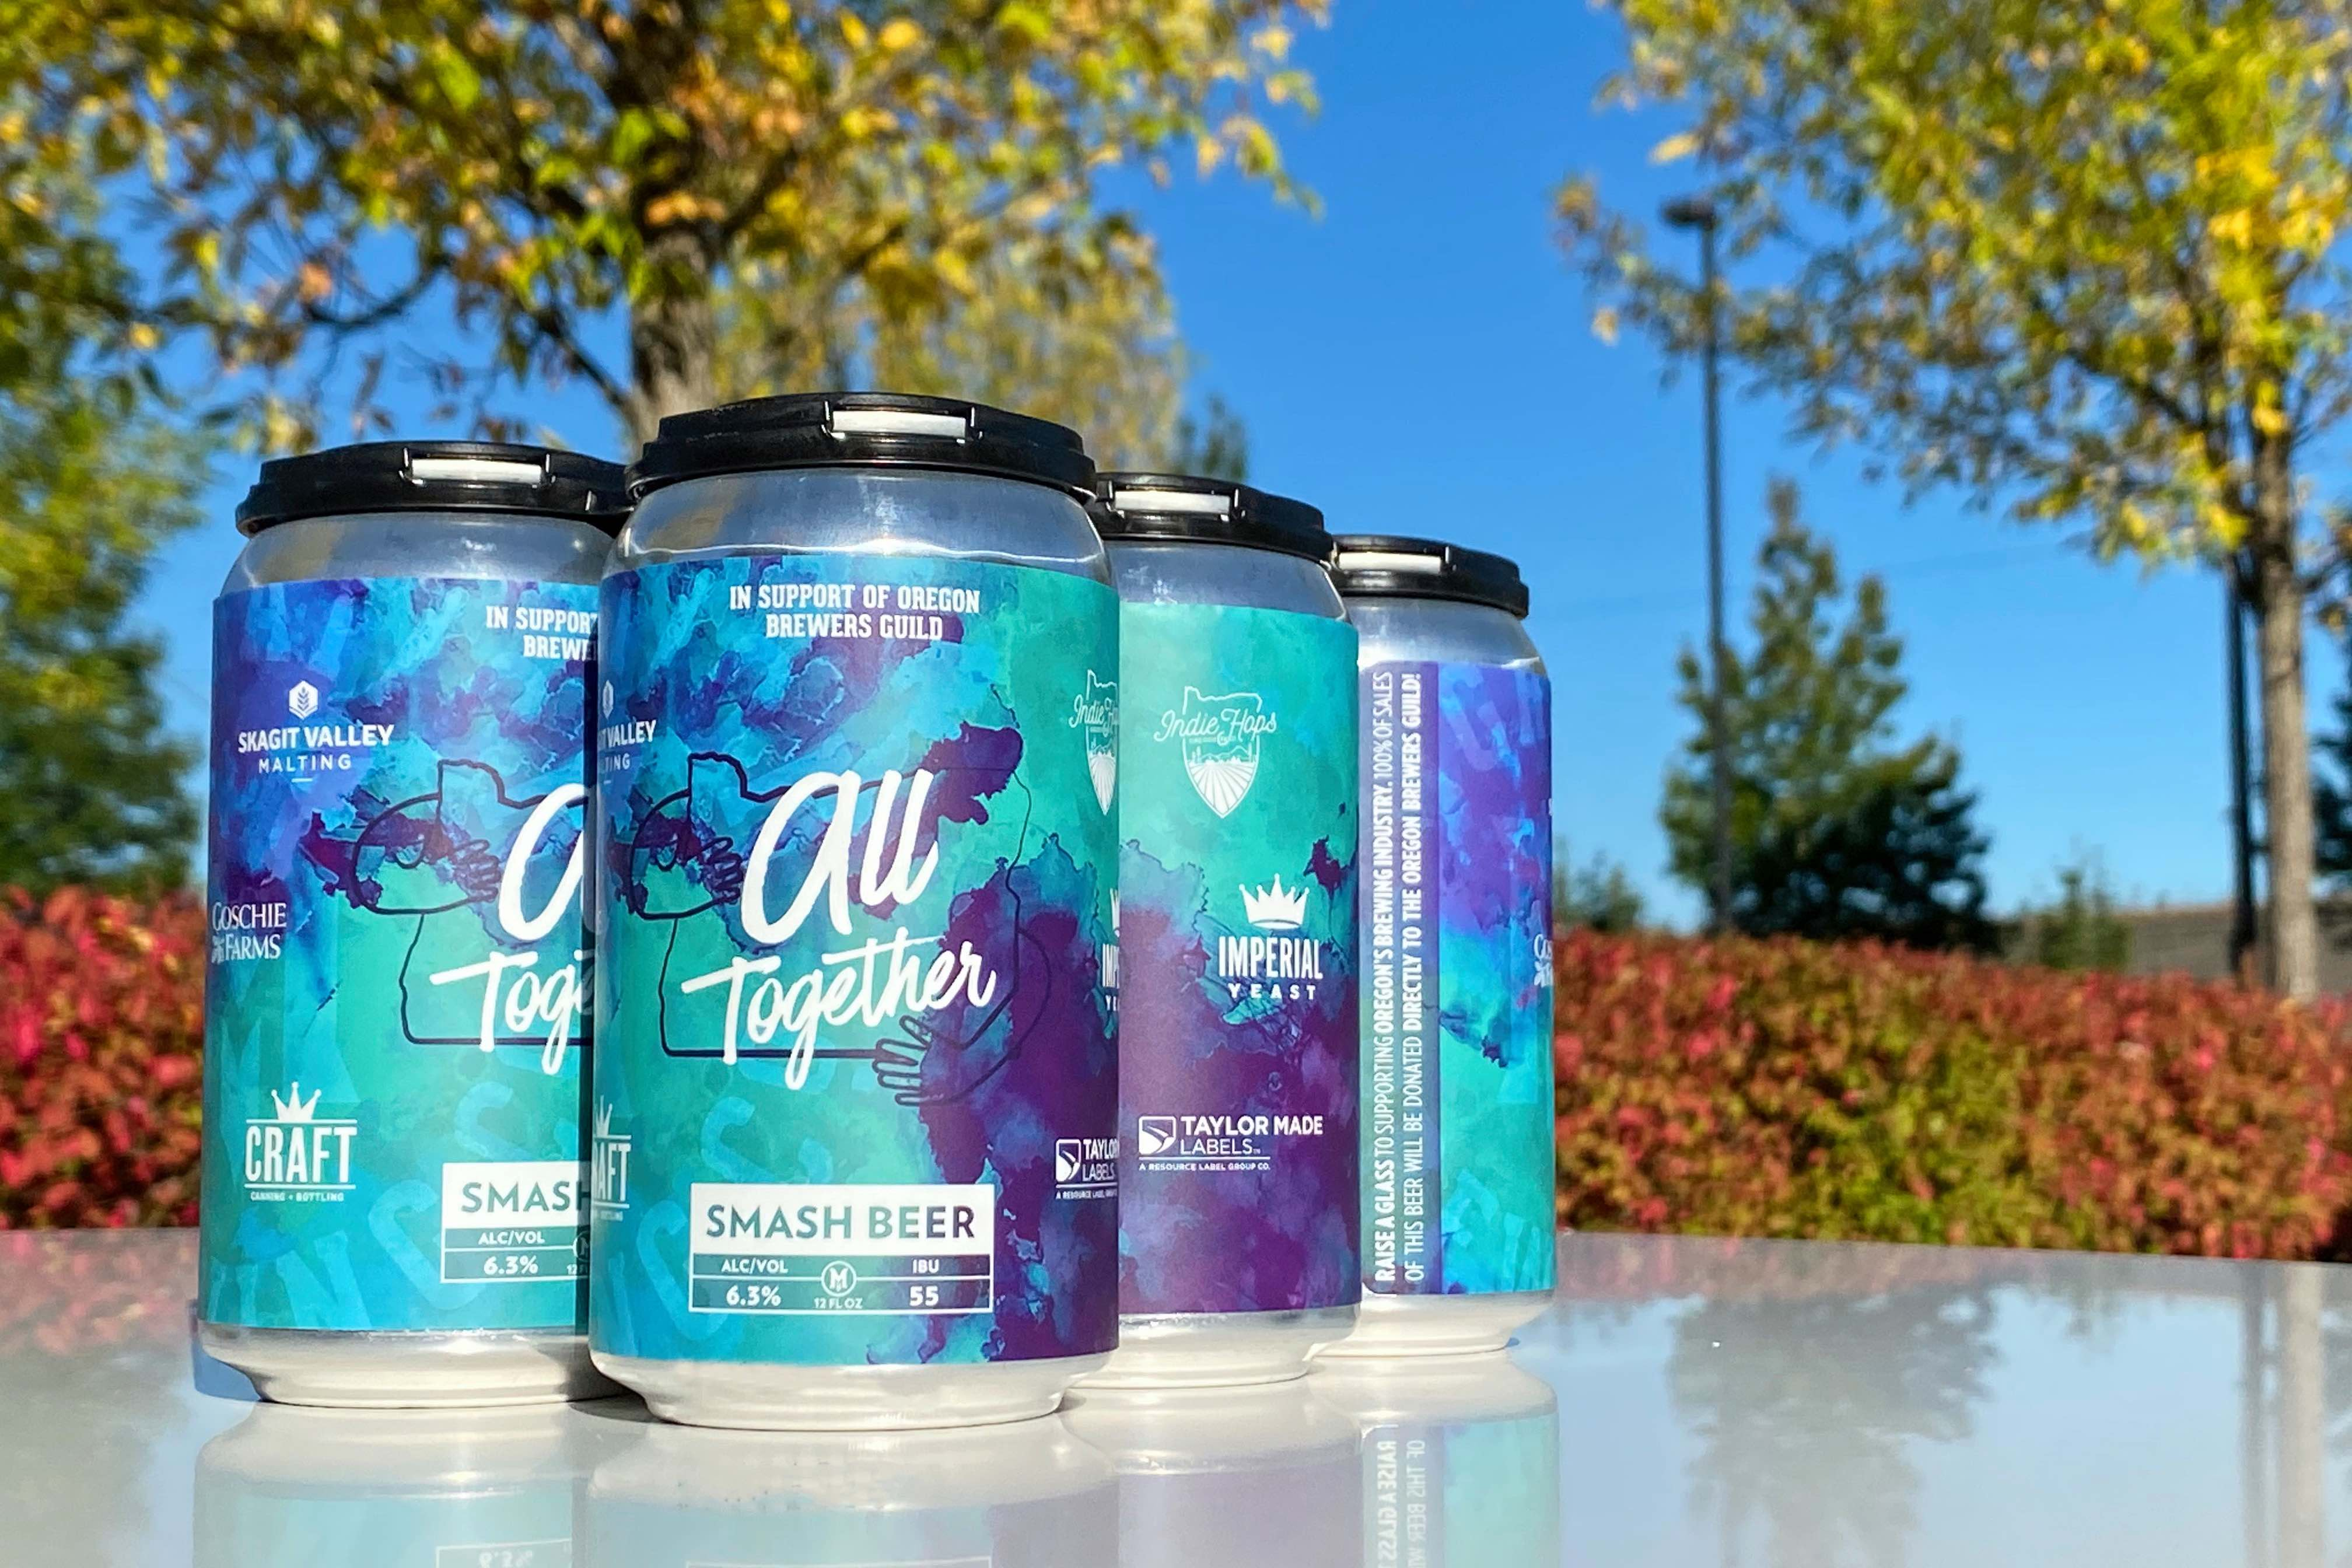 image of All Together SMaSH courtesy of Migration Brewing